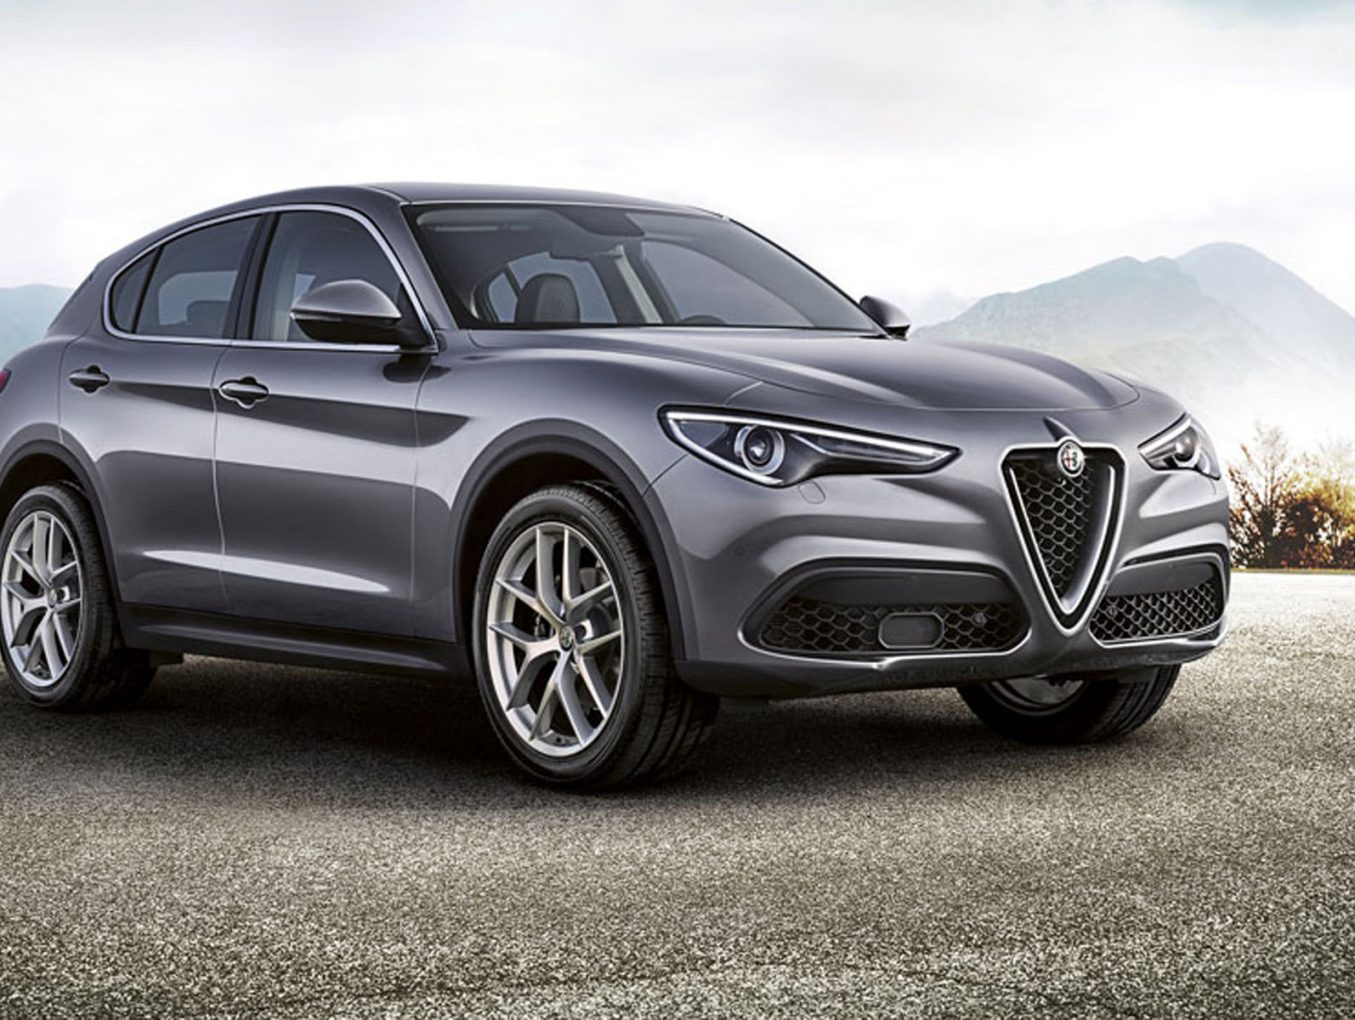 Alfa Romeo Stelvio 2.2 turbo diesel 150cv AT8 Q4 Business